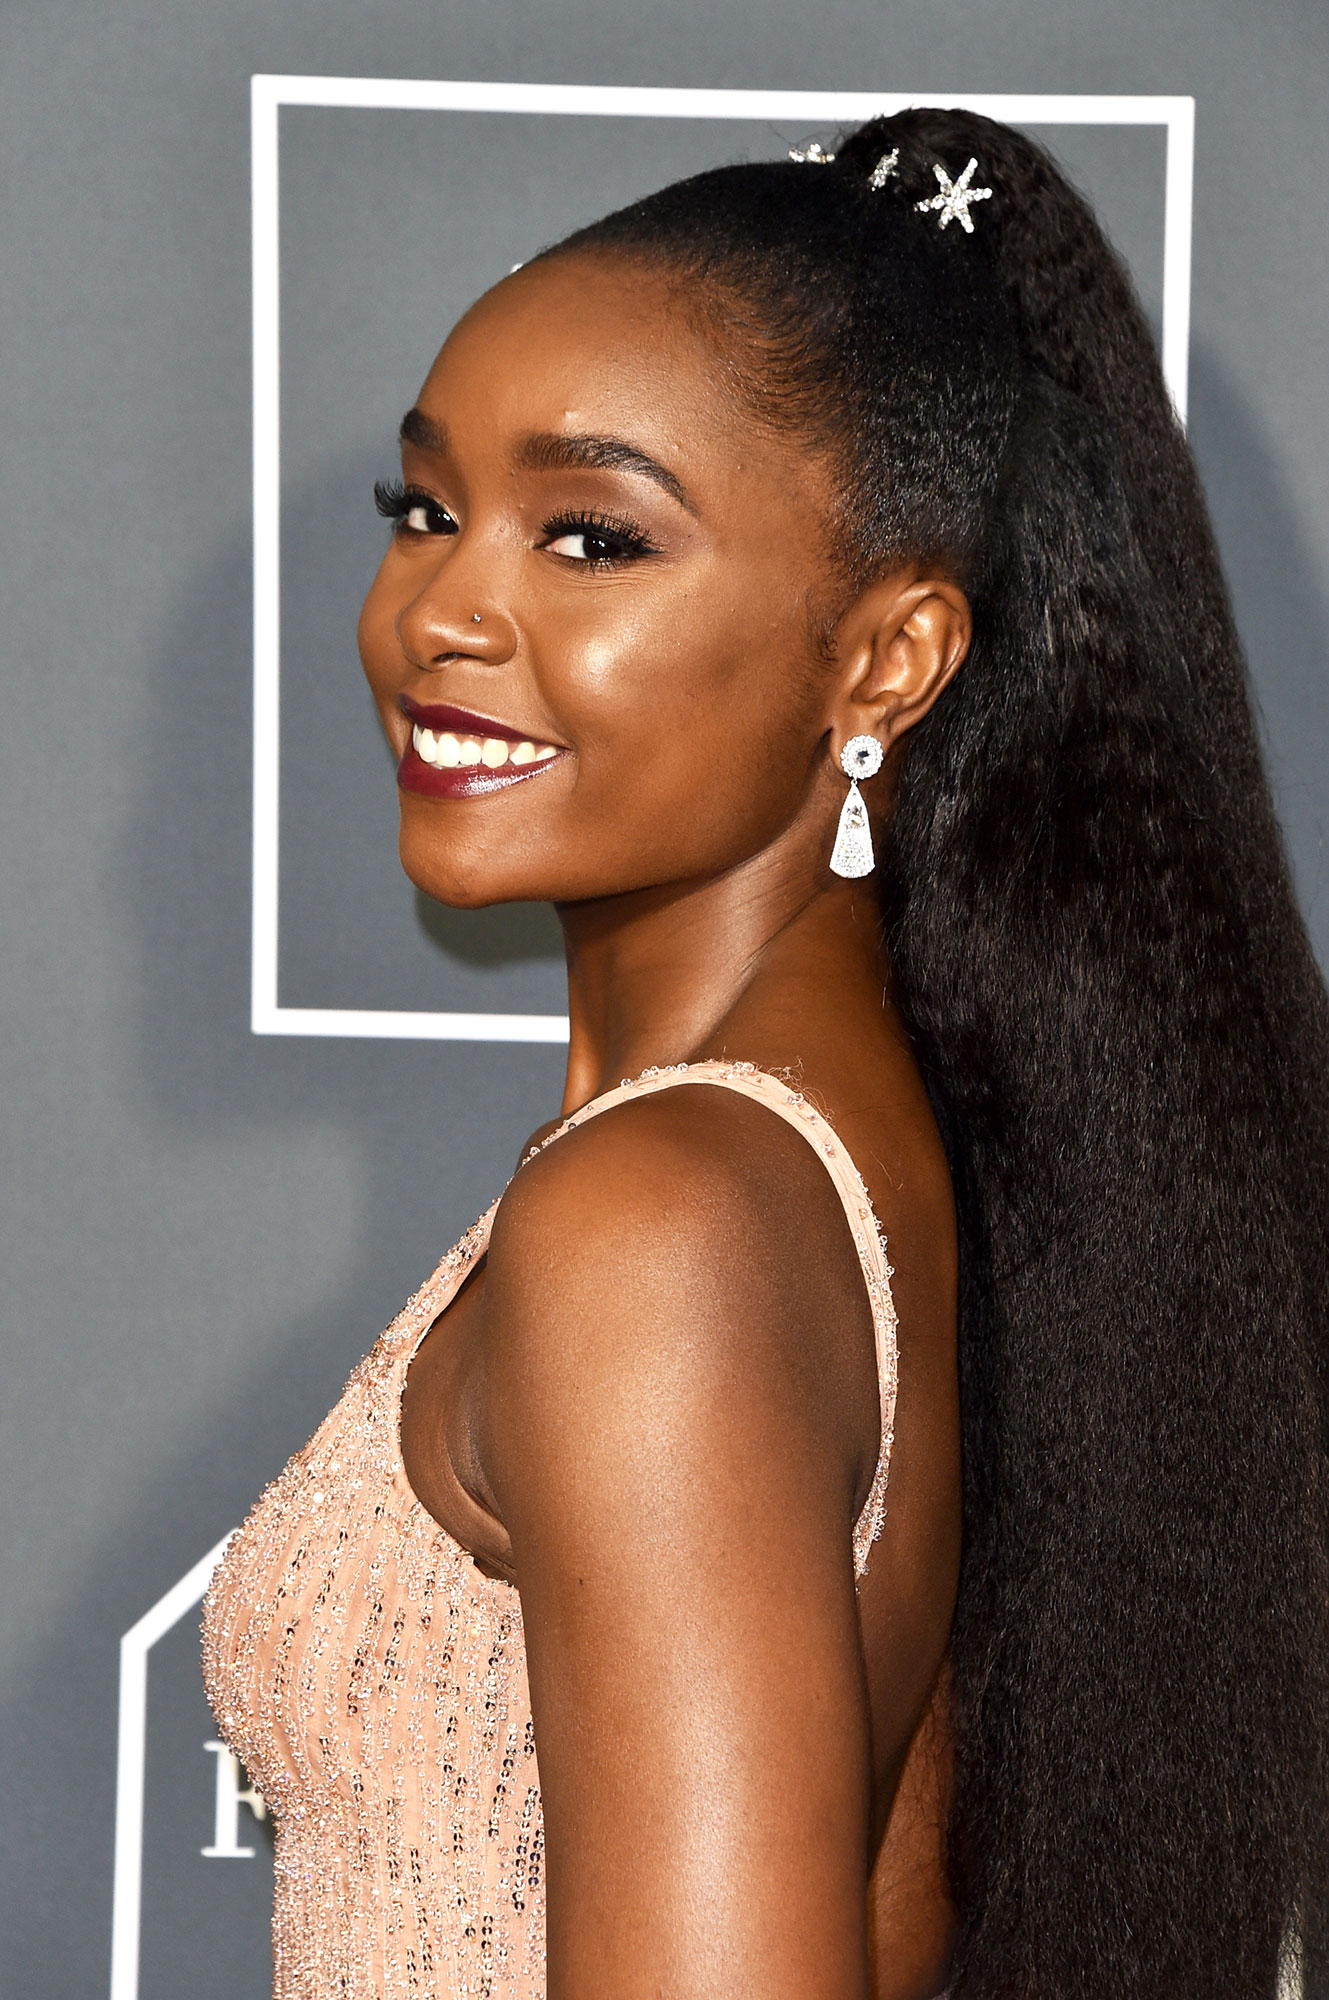 Kiki Layne Critics' Choice Awards 2019 - With an embellished half up bun using Jennifer Behr pins by mane maven Lacy Redway and smokey eyes, bold brows and burgundy glossy lips.